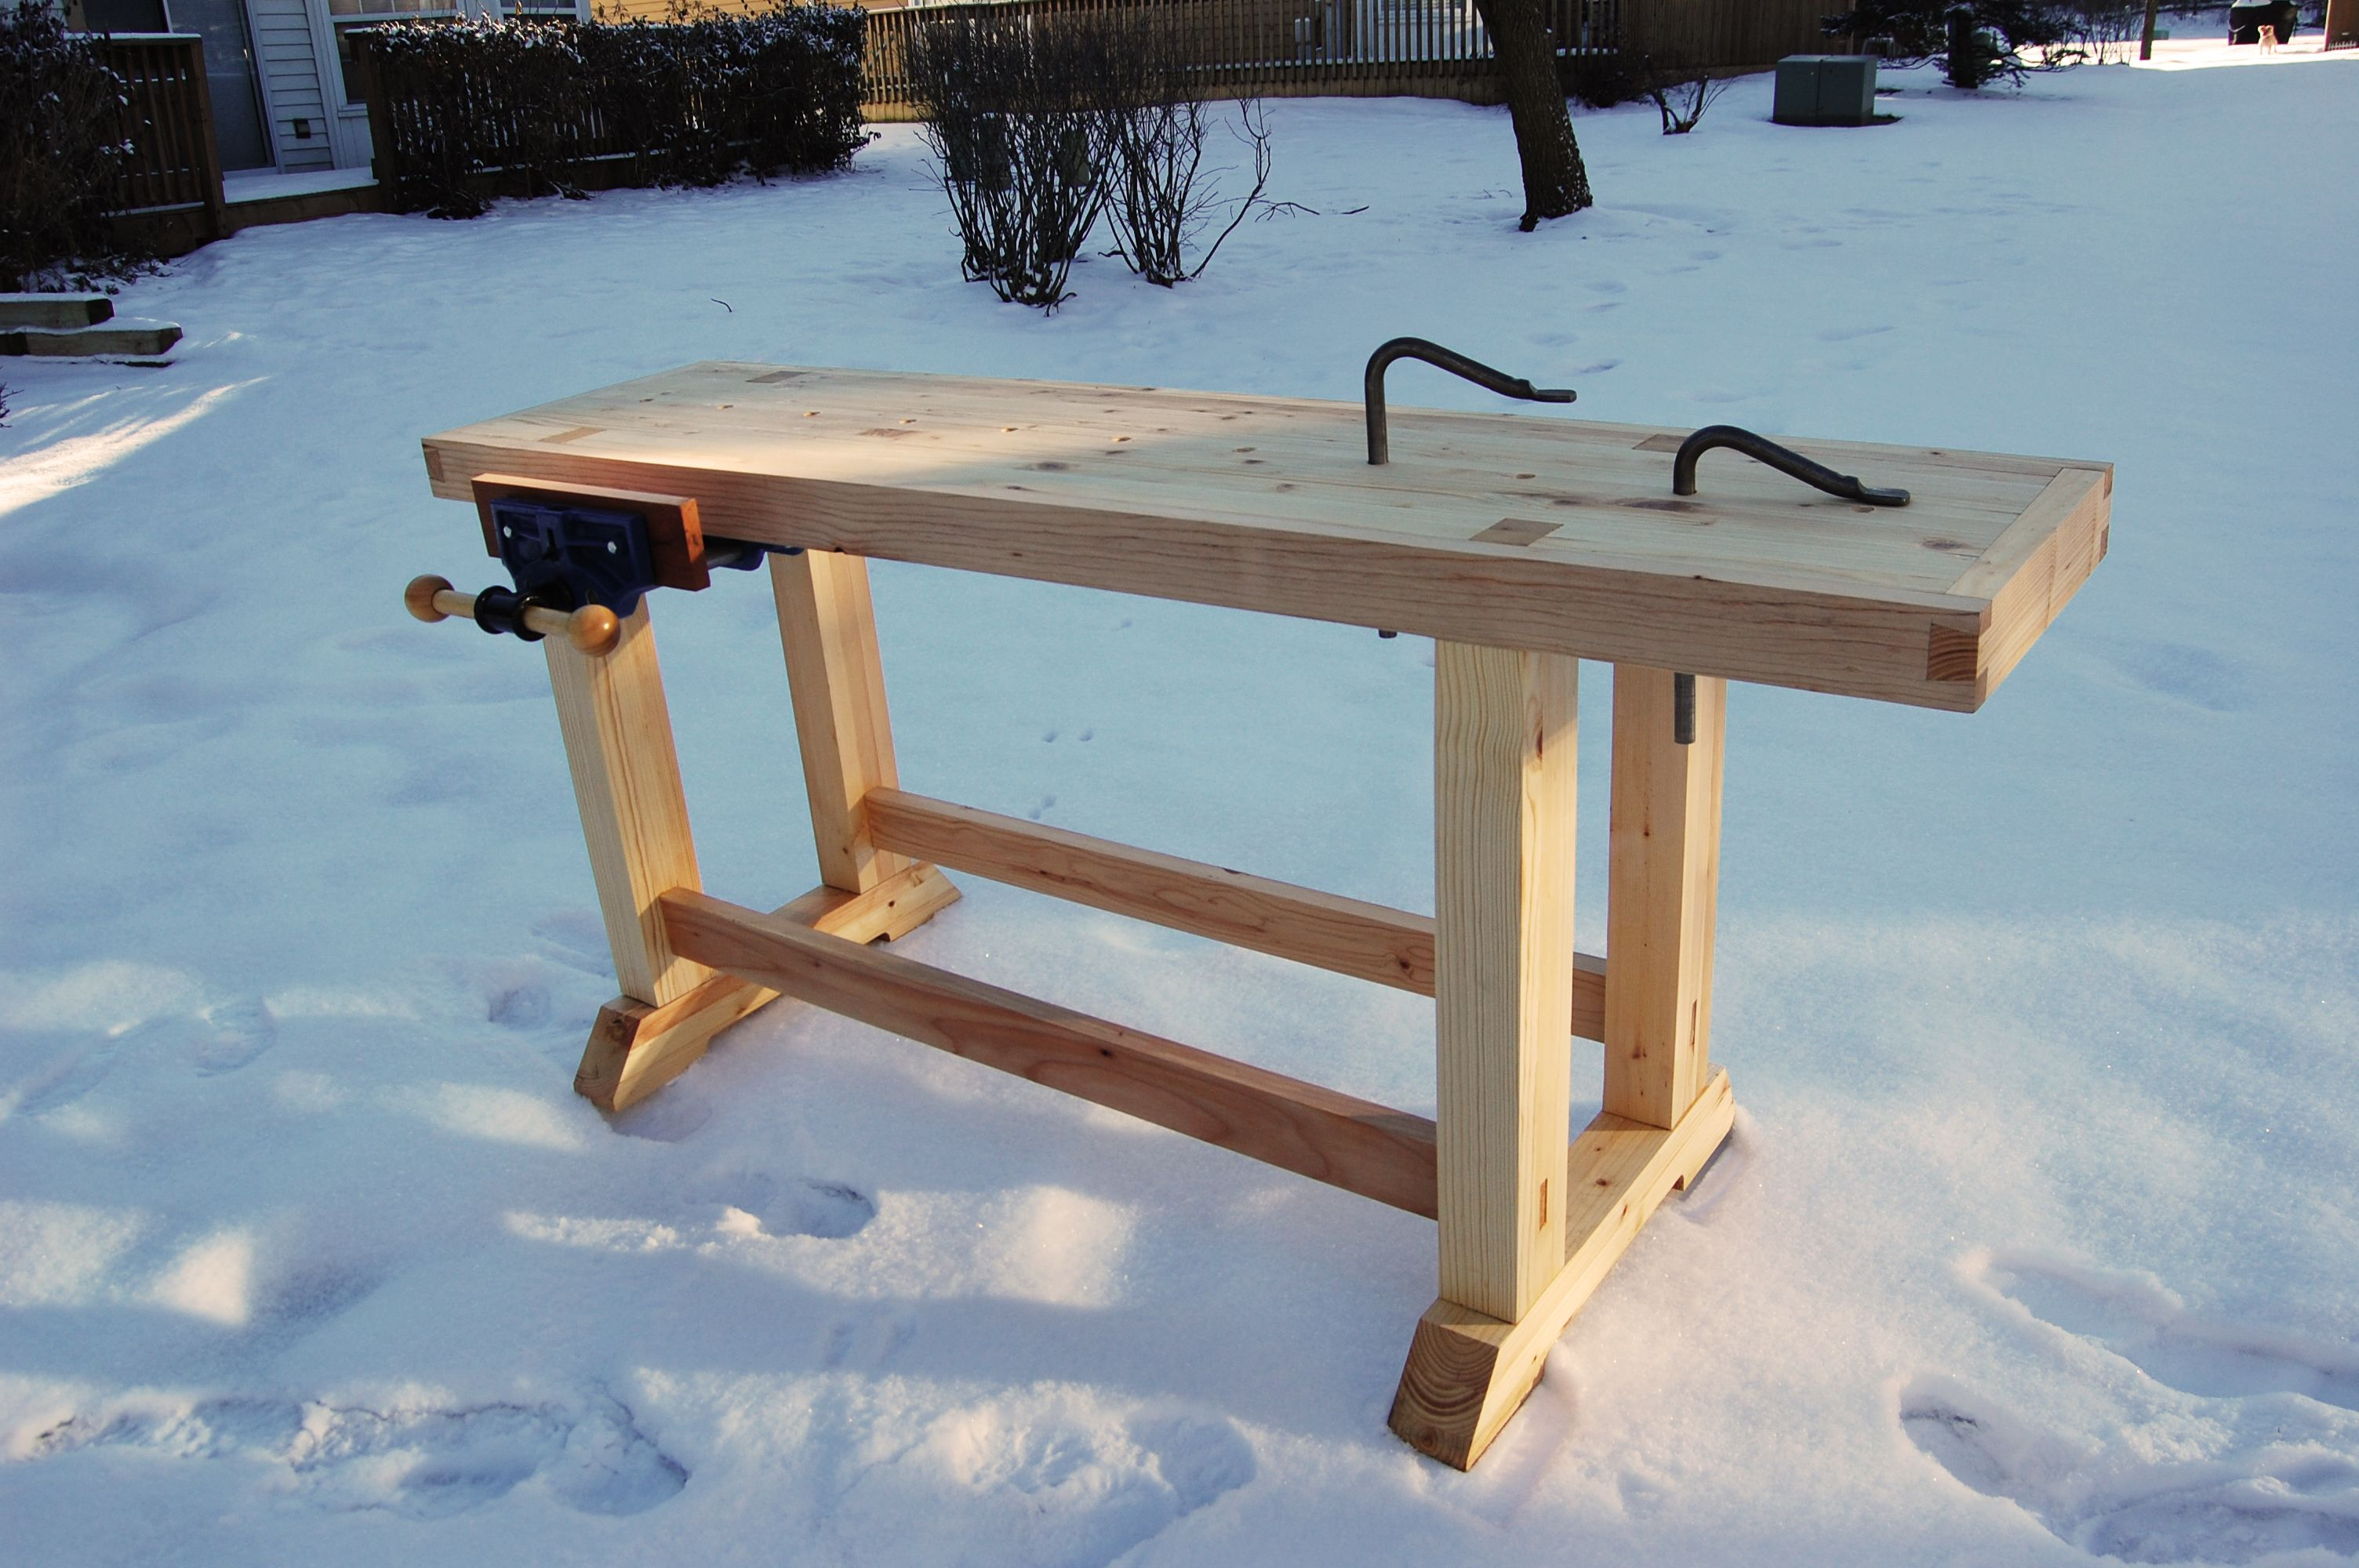 Woodworking Bench With 9 Vice And Holdfast Holes